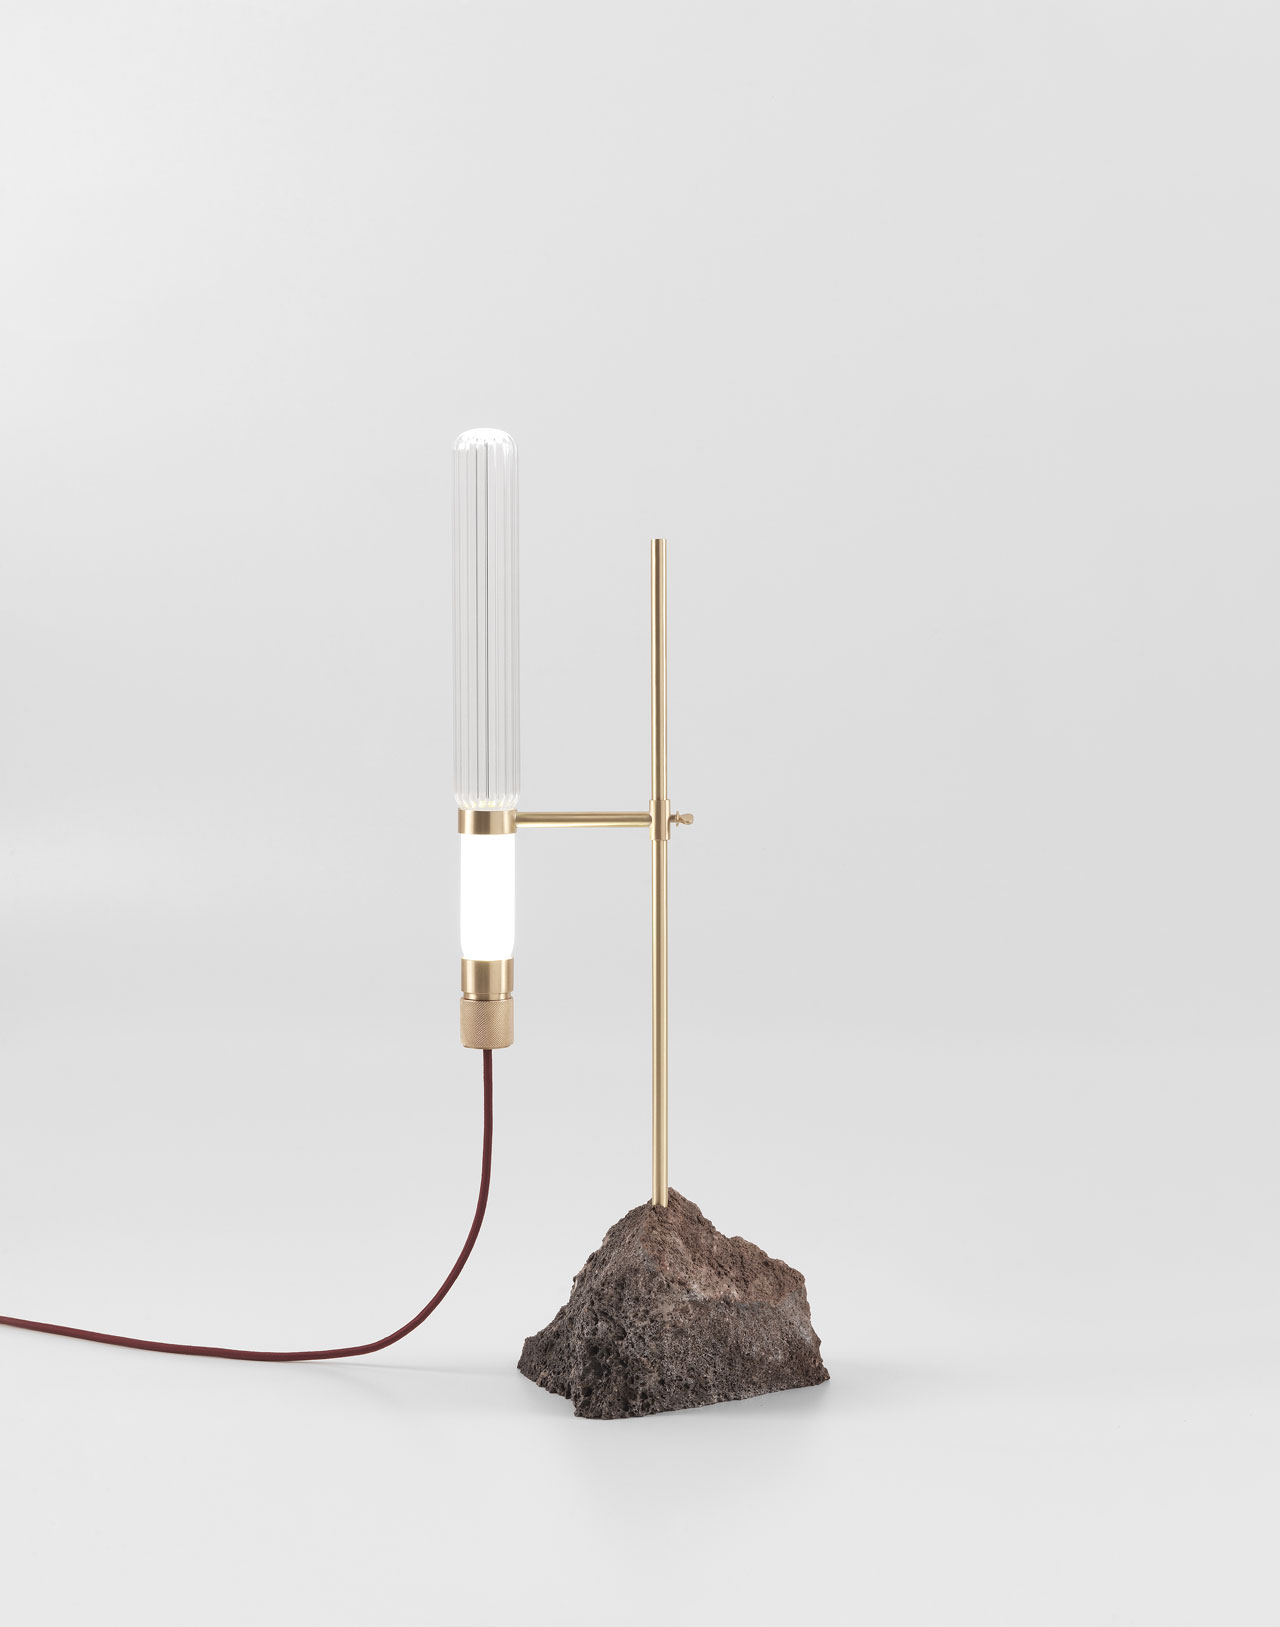 KRYPTAL table lamp by CTRLZAK for JCP Universe.Materials: lava stone base with matte brass structure and glass body.Dimensions (H x W x D): 75cm x 33cm x 15cm.Photo by Silvio Macchi © JCP Universe.